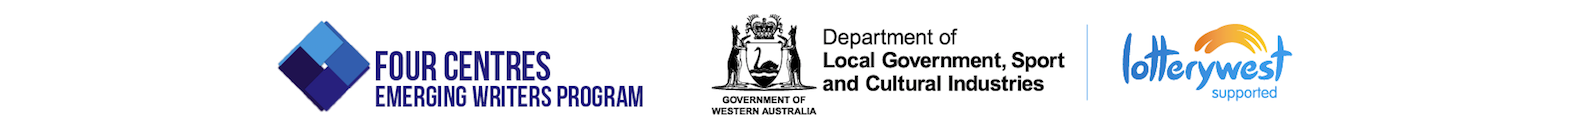 Four Centres Emerging Writers Program and the Department of Local Government, Sports and Cultural Industries and Lotterywest